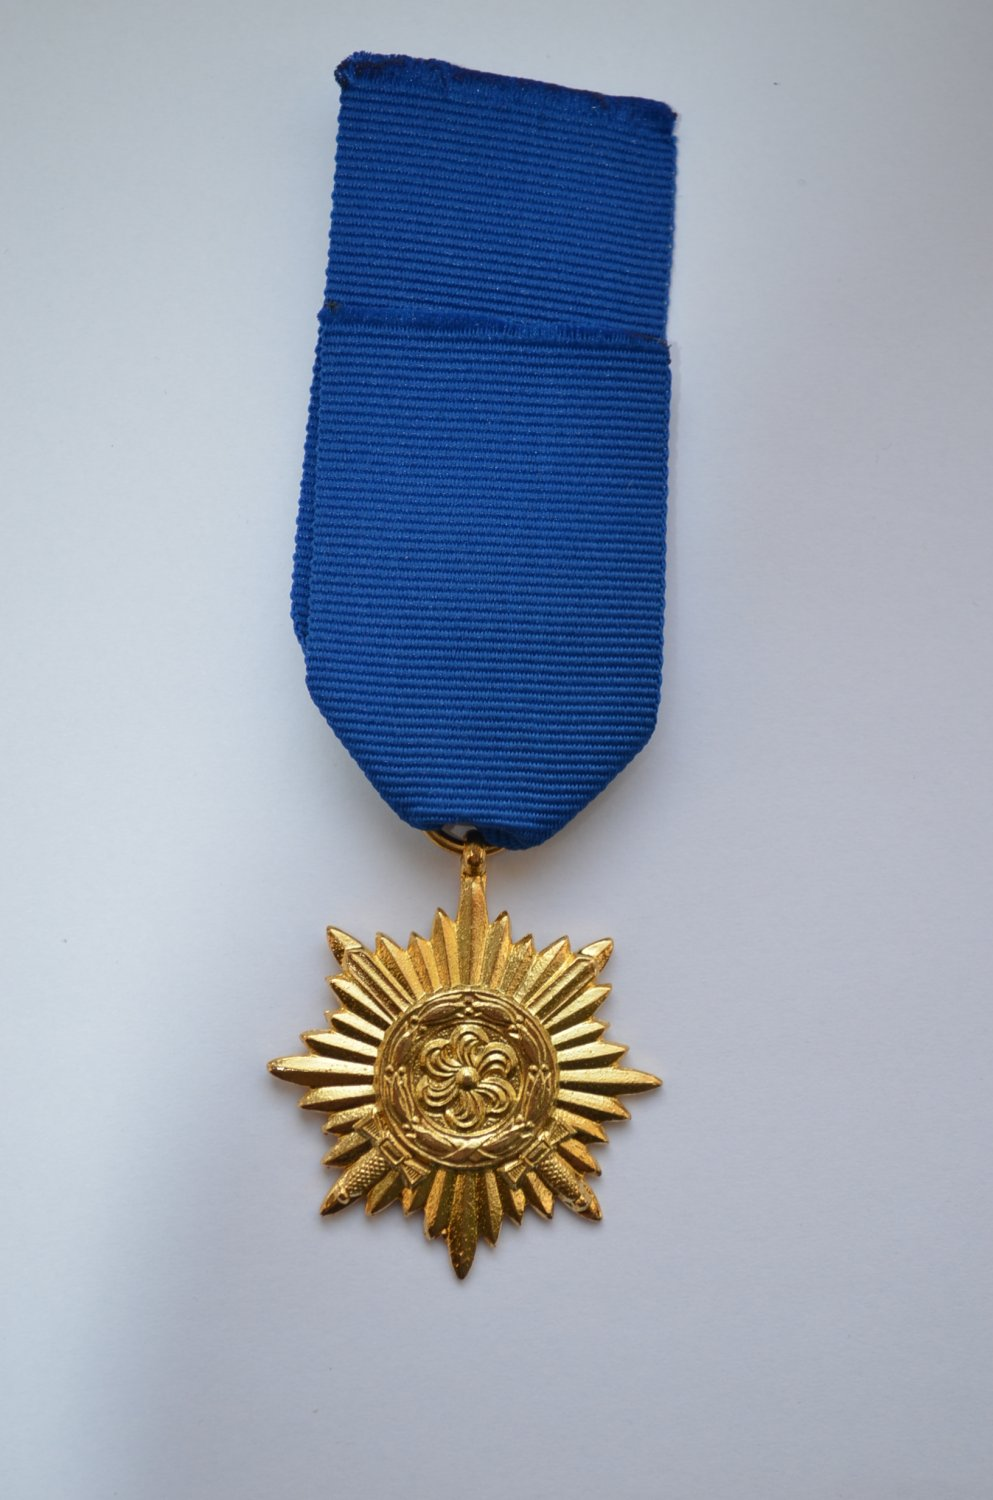 WWII GERMAN MEDAL OSTVOLK